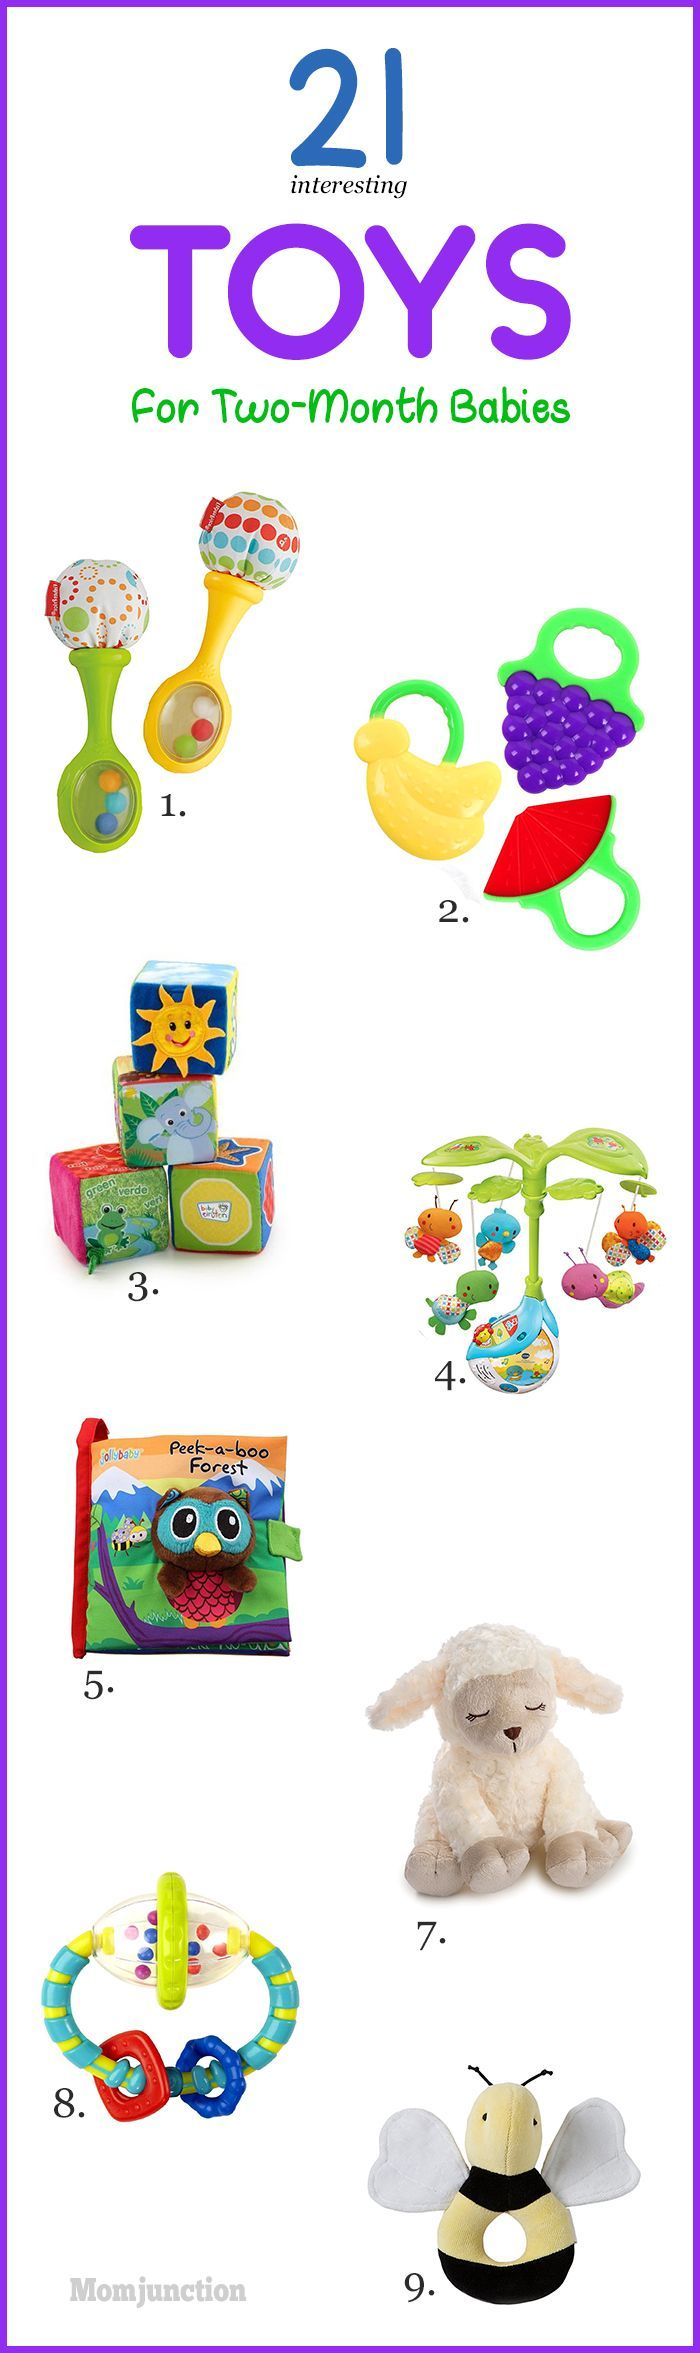 Are you looking for some engaging toys for 2 month old that will bring a smile to your 2 month old baby's face? Read on and get some amazing ideas for toys.